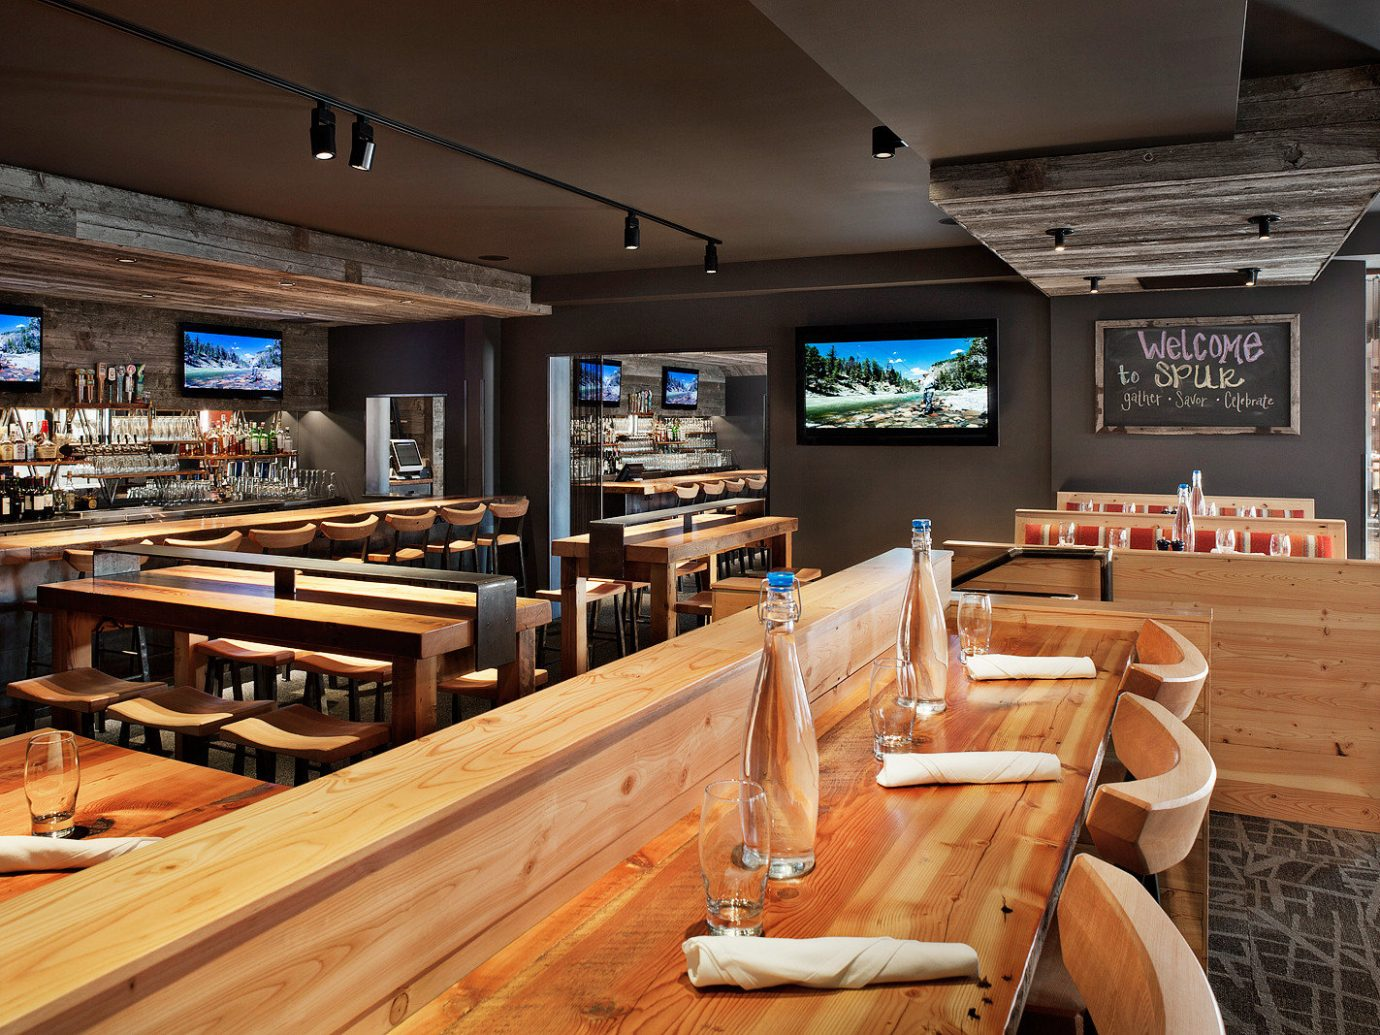 Bar Dining Drink Eat Eco Lodge Mountains Outdoor Activities Scenic views Ski indoor ceiling room recreation room restaurant interior design wood home wooden estate meal furniture